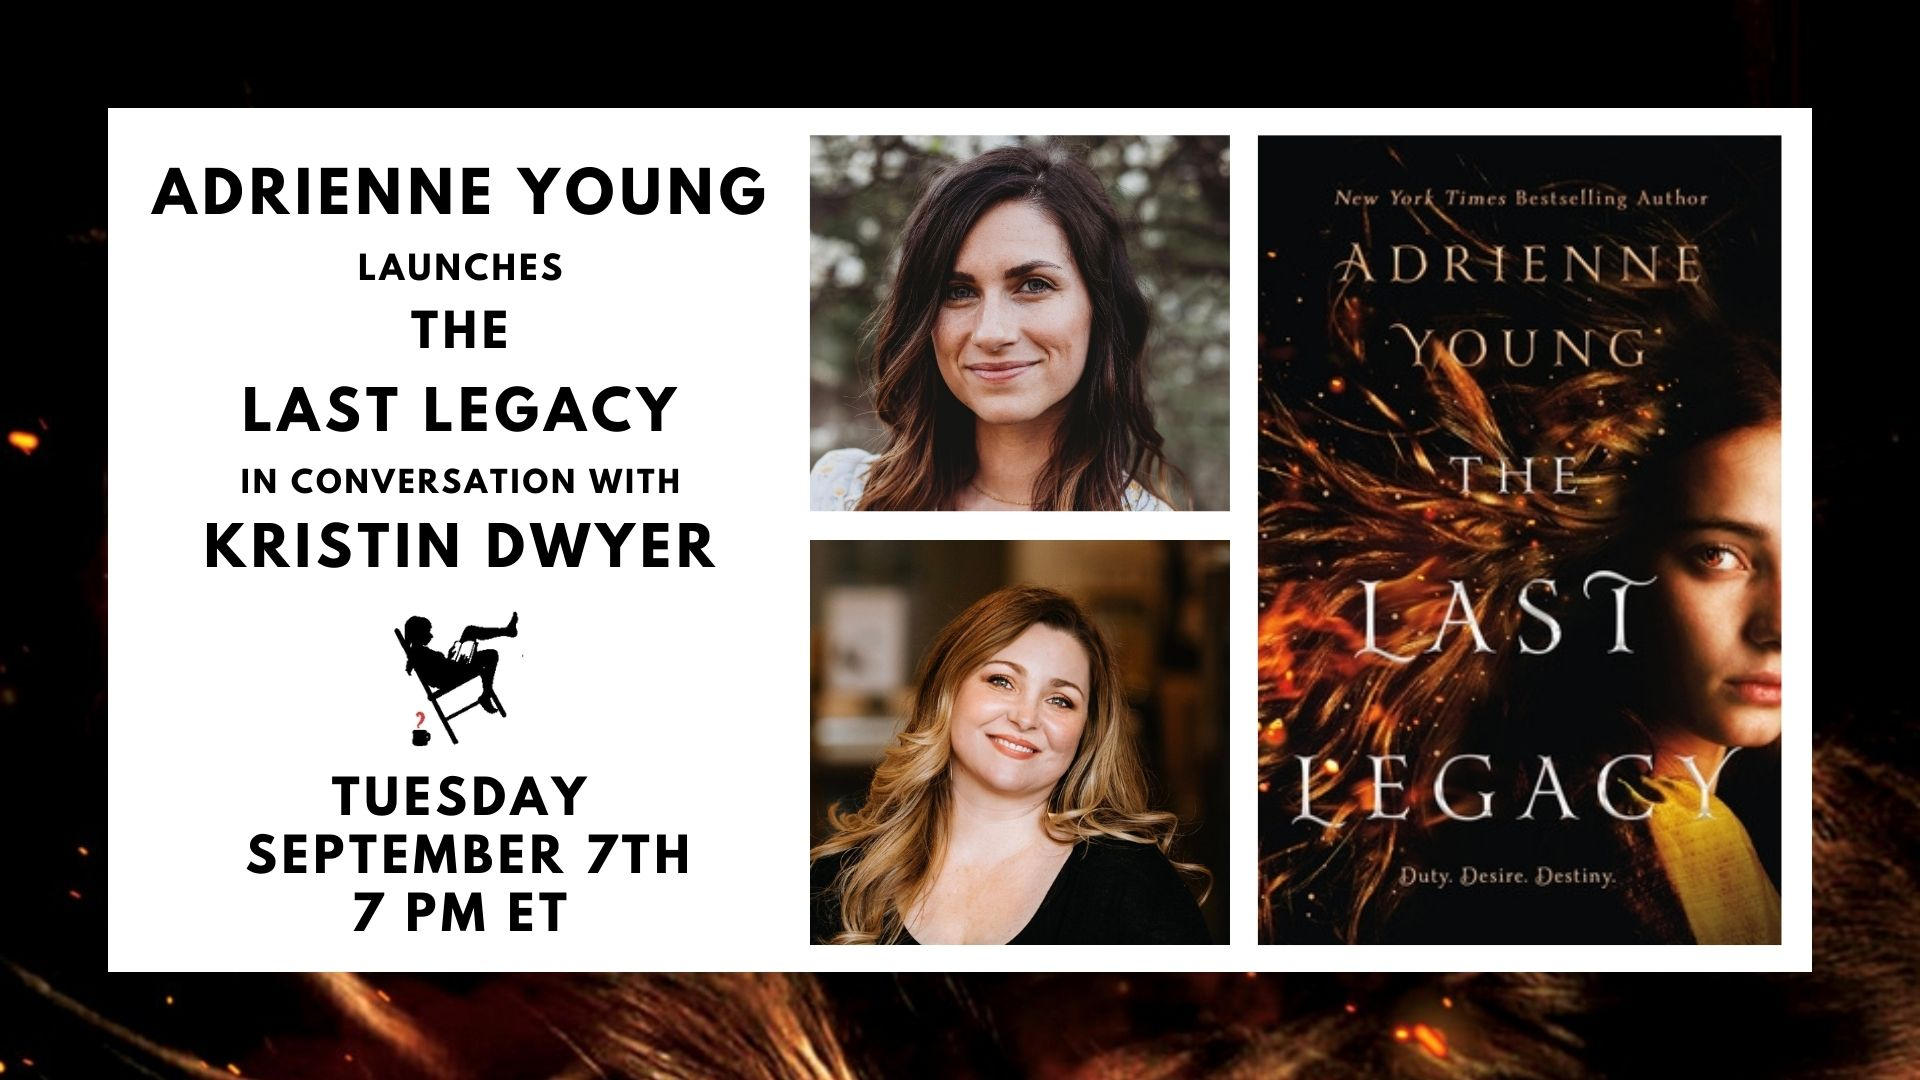 Image shows a black border with a white box containing: Adrienne Young presents The Last Legacy in conversation with Kristin Dwyer. Tuesday, September 7th, 7 PM ET. Photos of the authors and cover of the book are also shown.